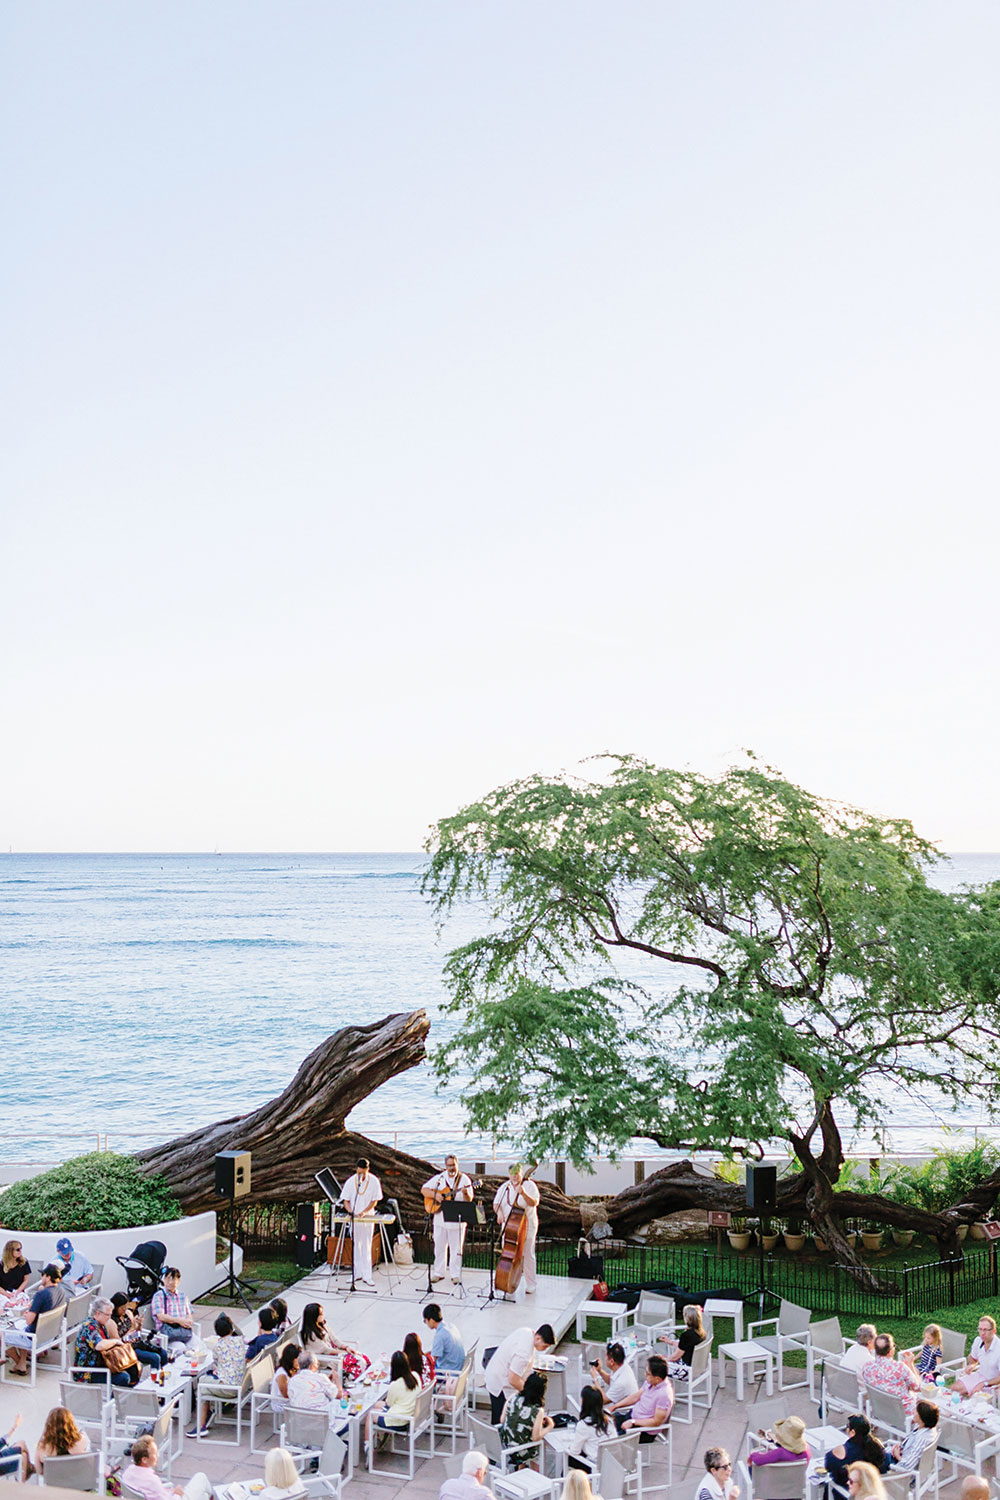 Trio band dress in white play for a crowd in front of a tree and ocean.